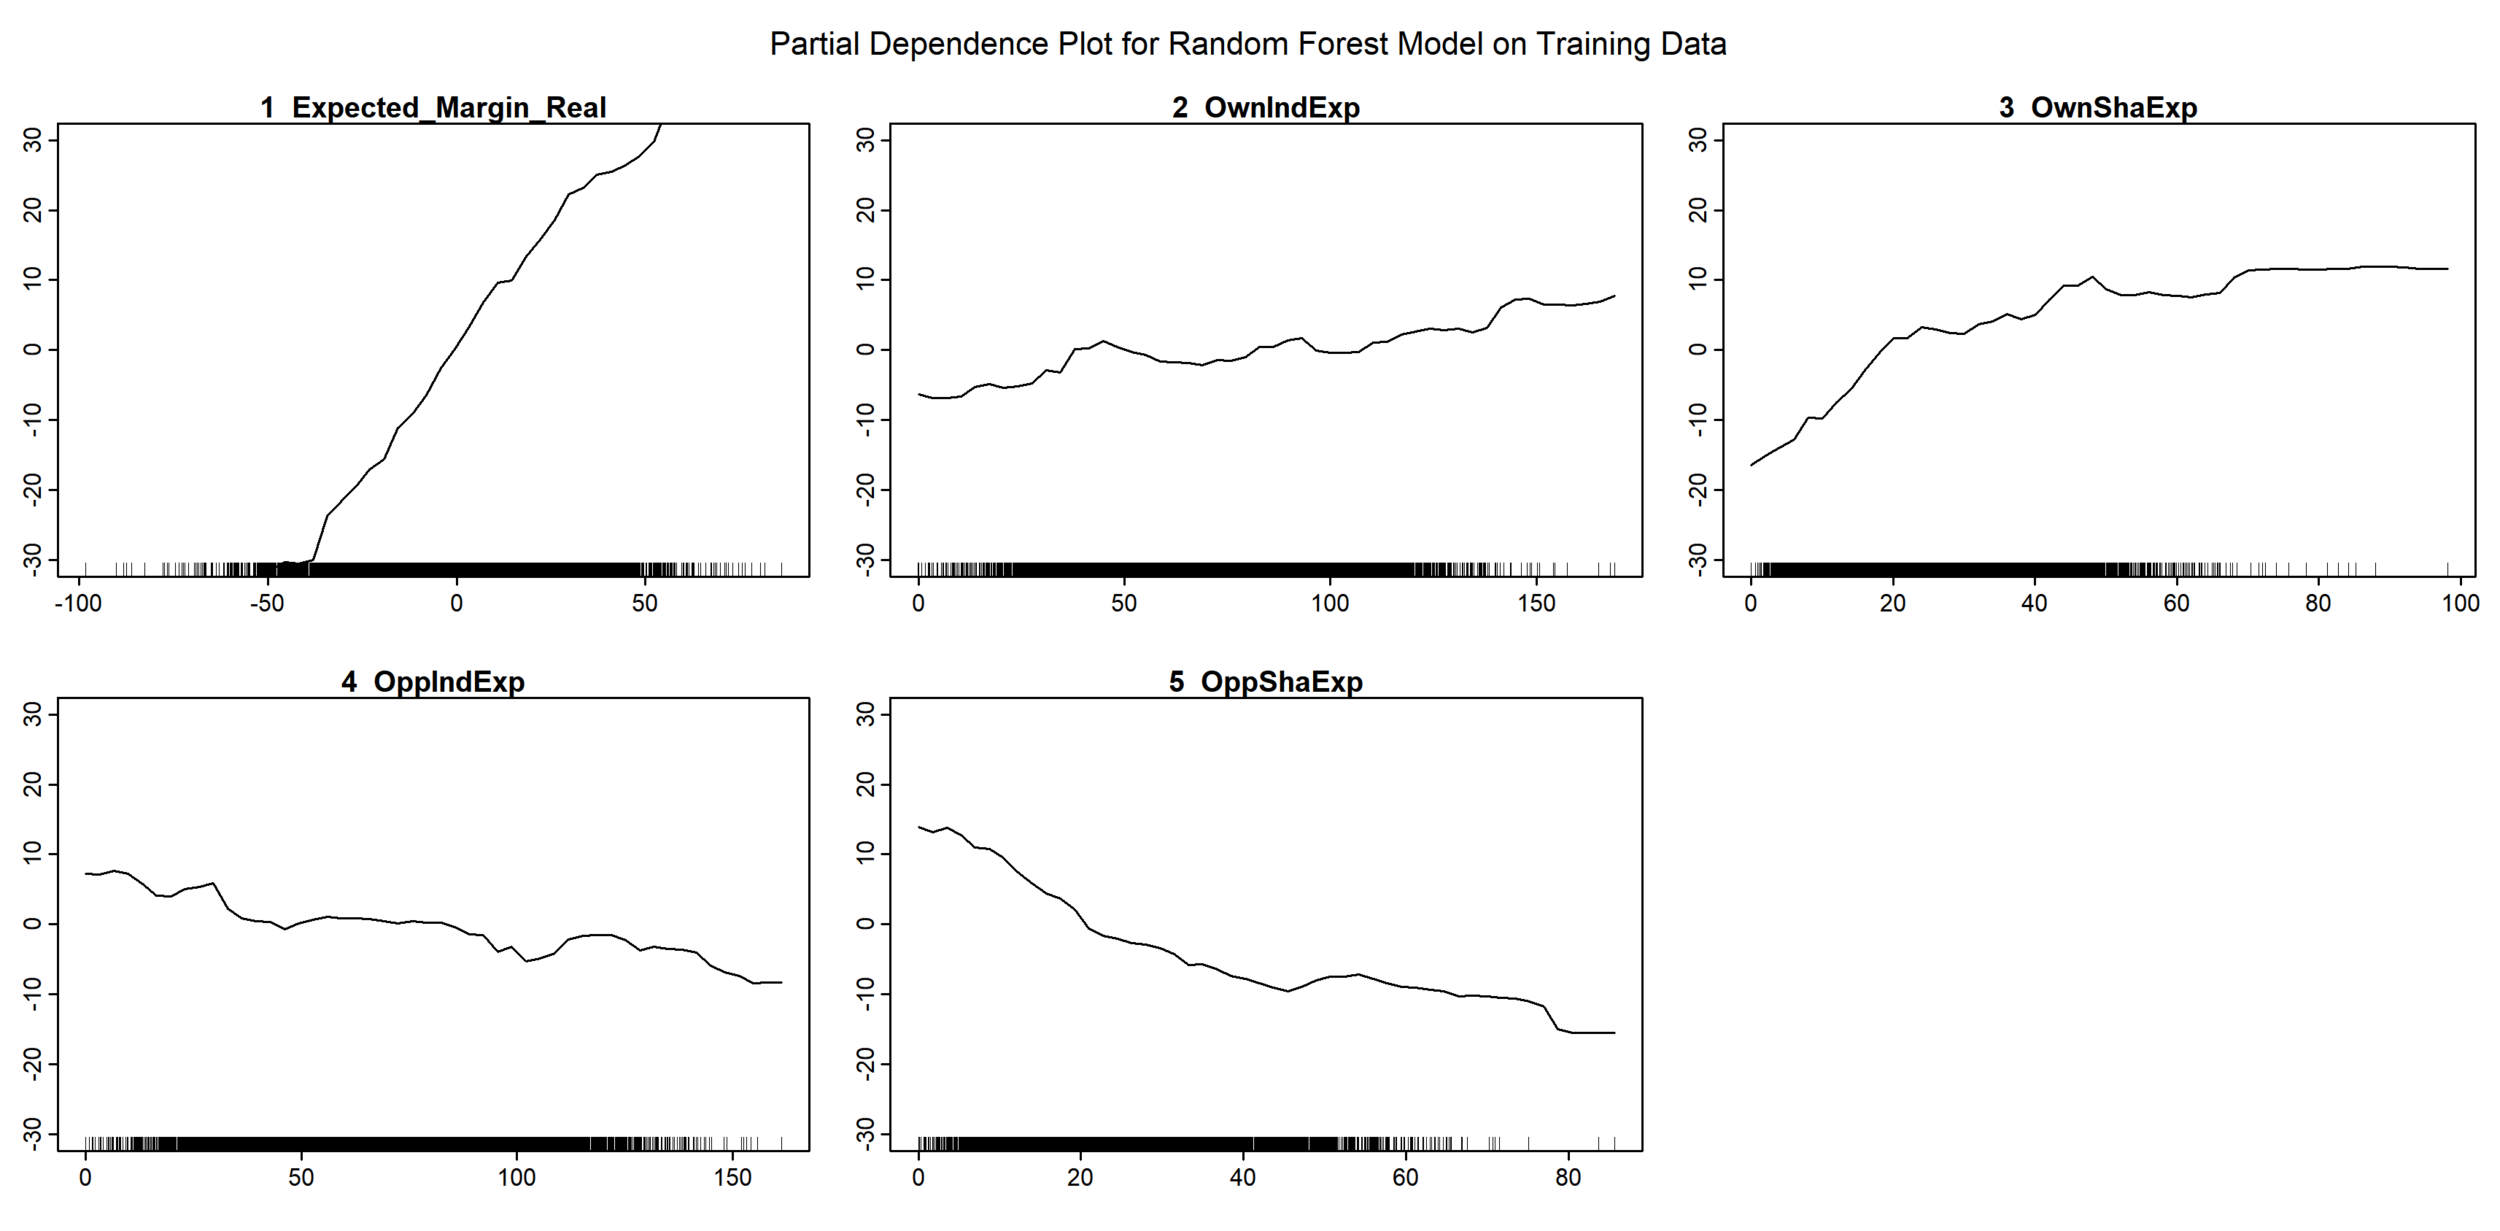 Partial Plot for MoSHBODS Random Forest with Margin as Dependent - Simple.png